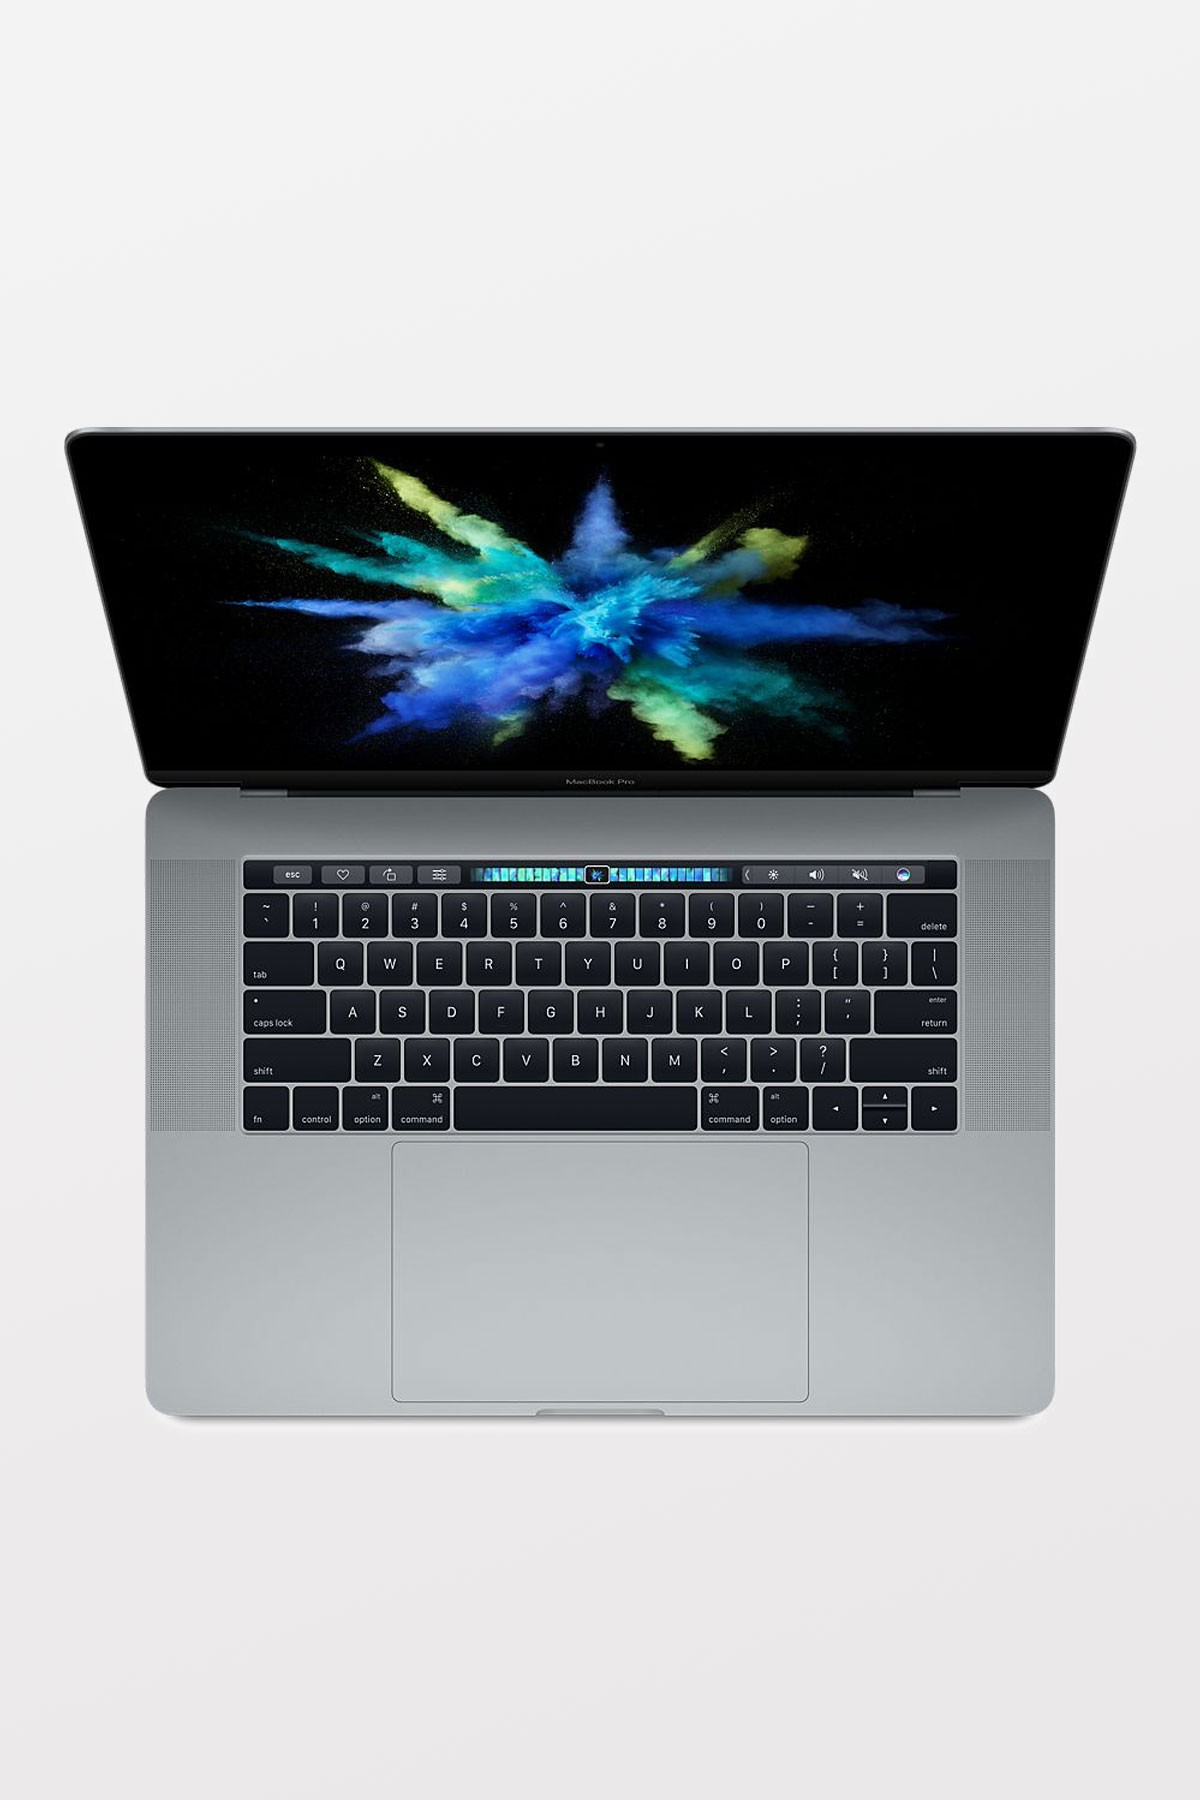 Apple MacBook Pro with Touch Bar 15-inch (2.3GHz 8-Core i9/16GB/512GB Flash/Radeon Pro 560X 4GB) - Space Grey